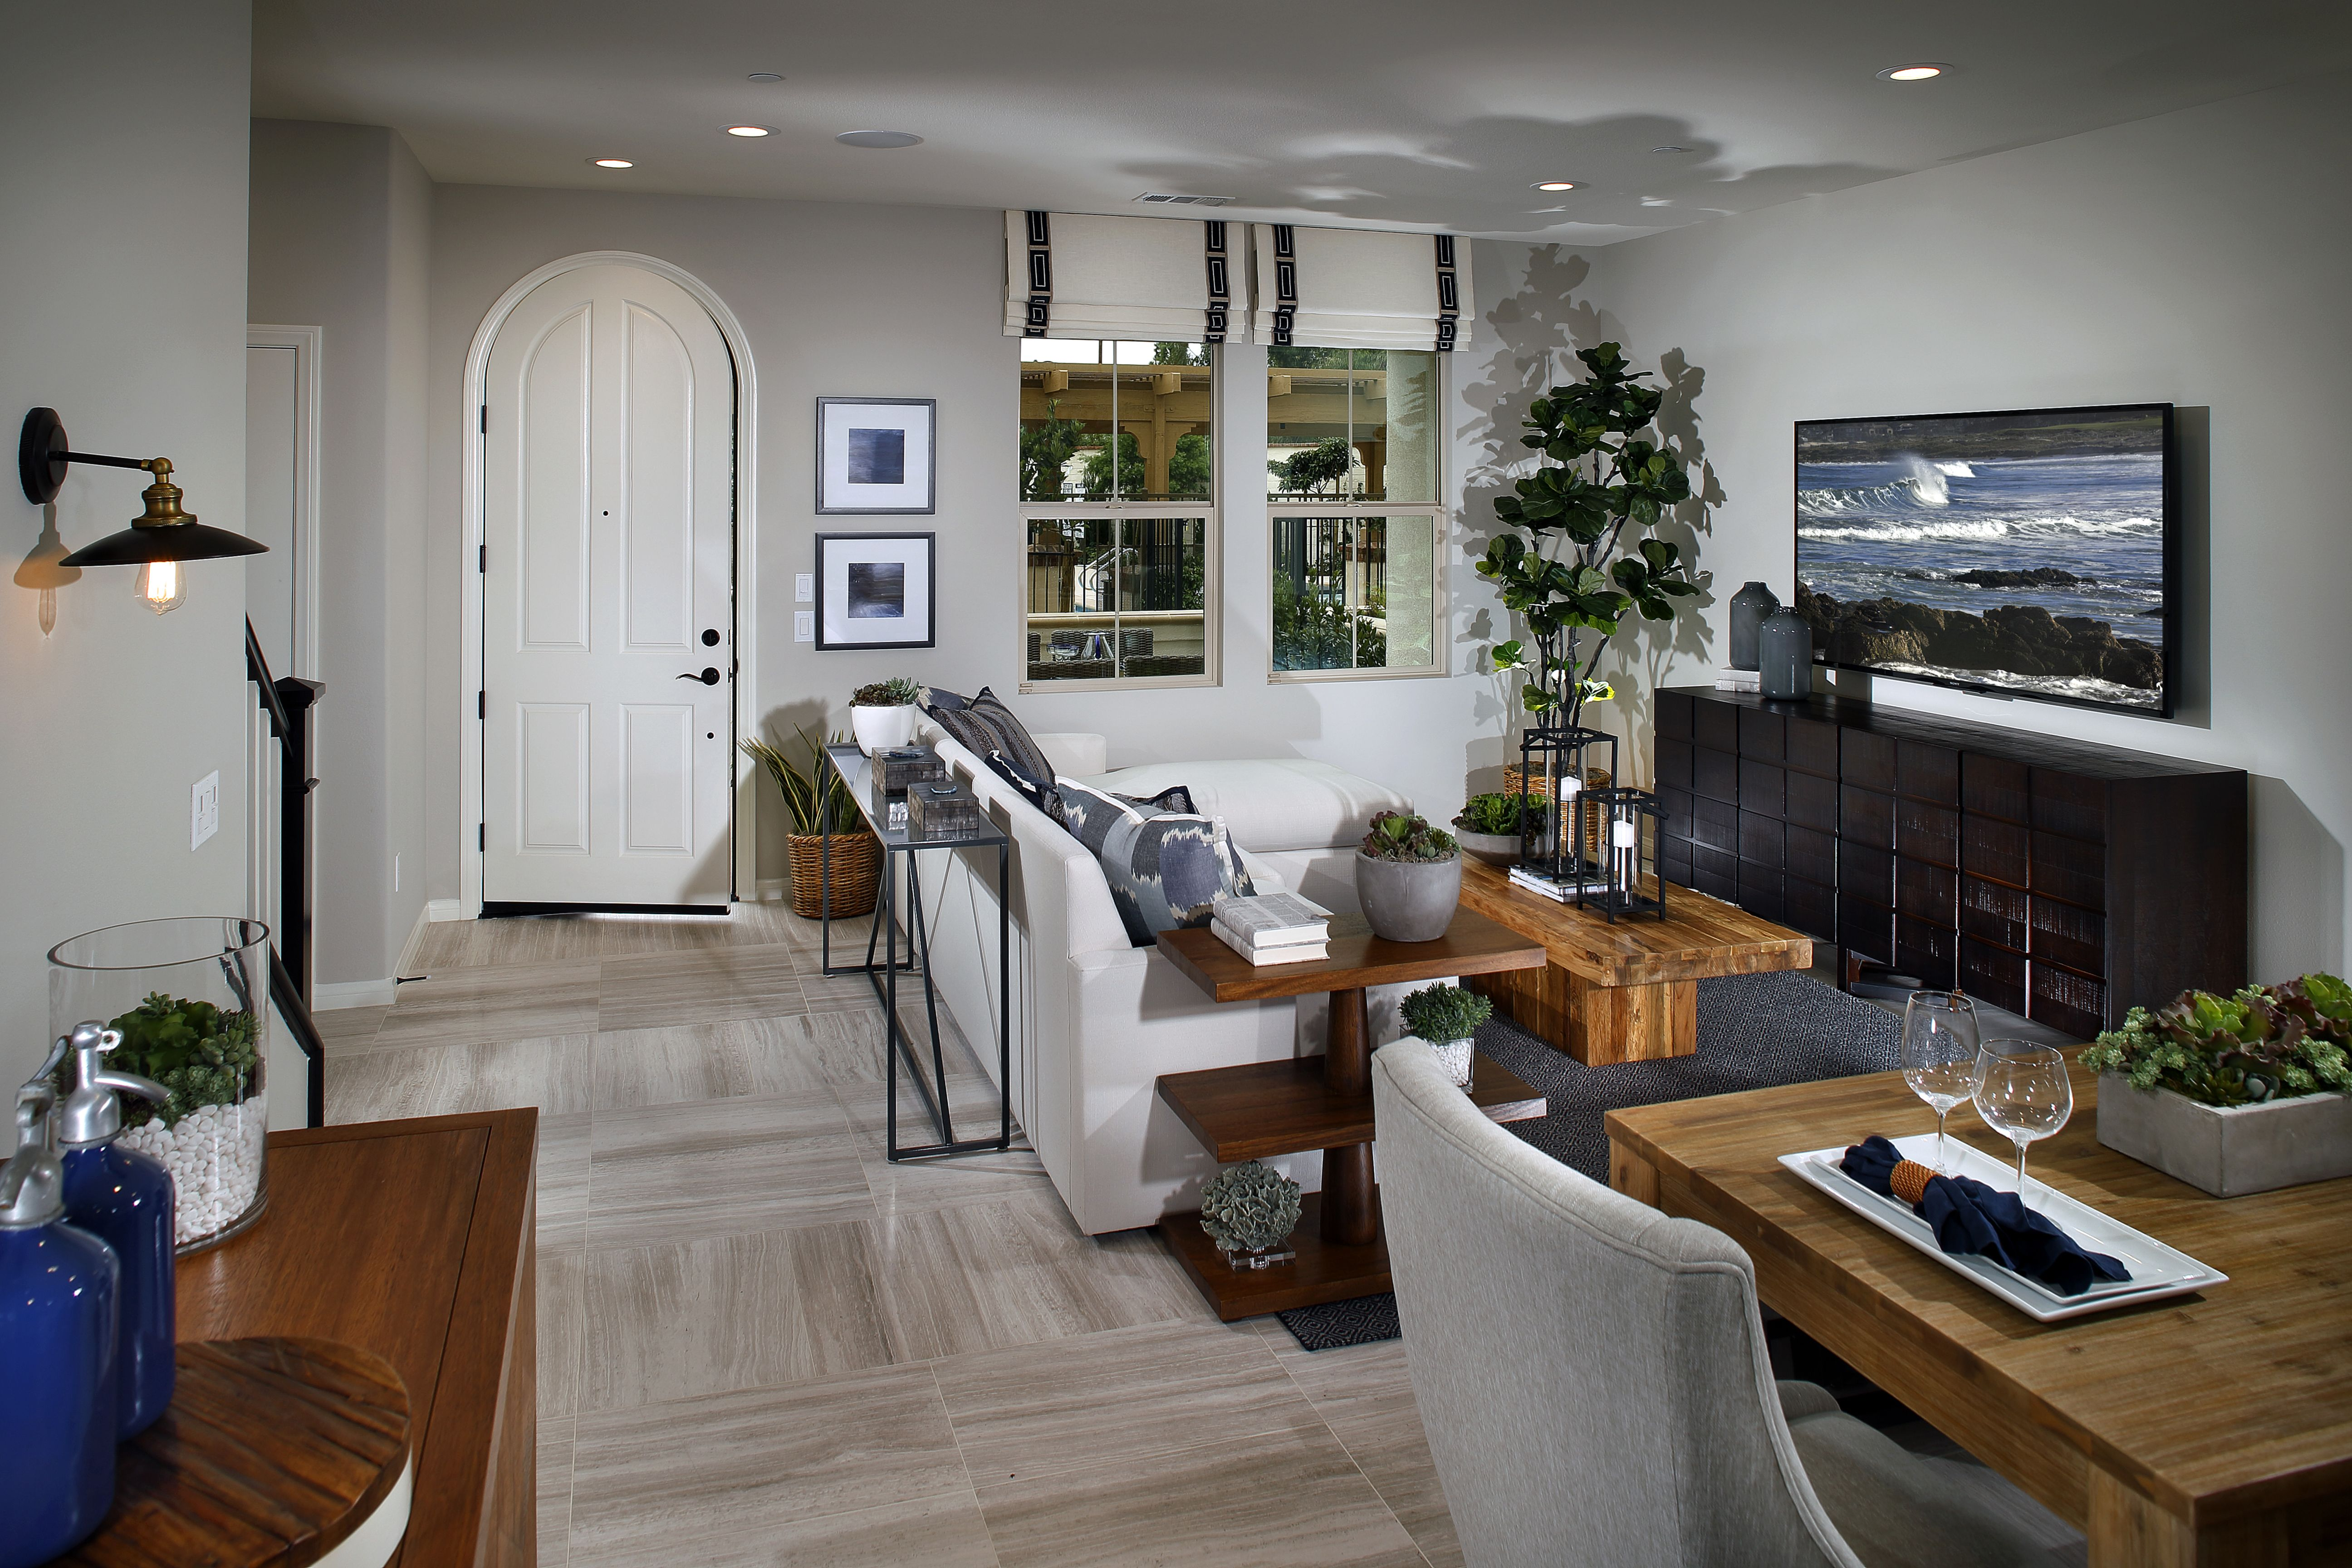 Photo of Orange County, California Homes For Sale by Lennar